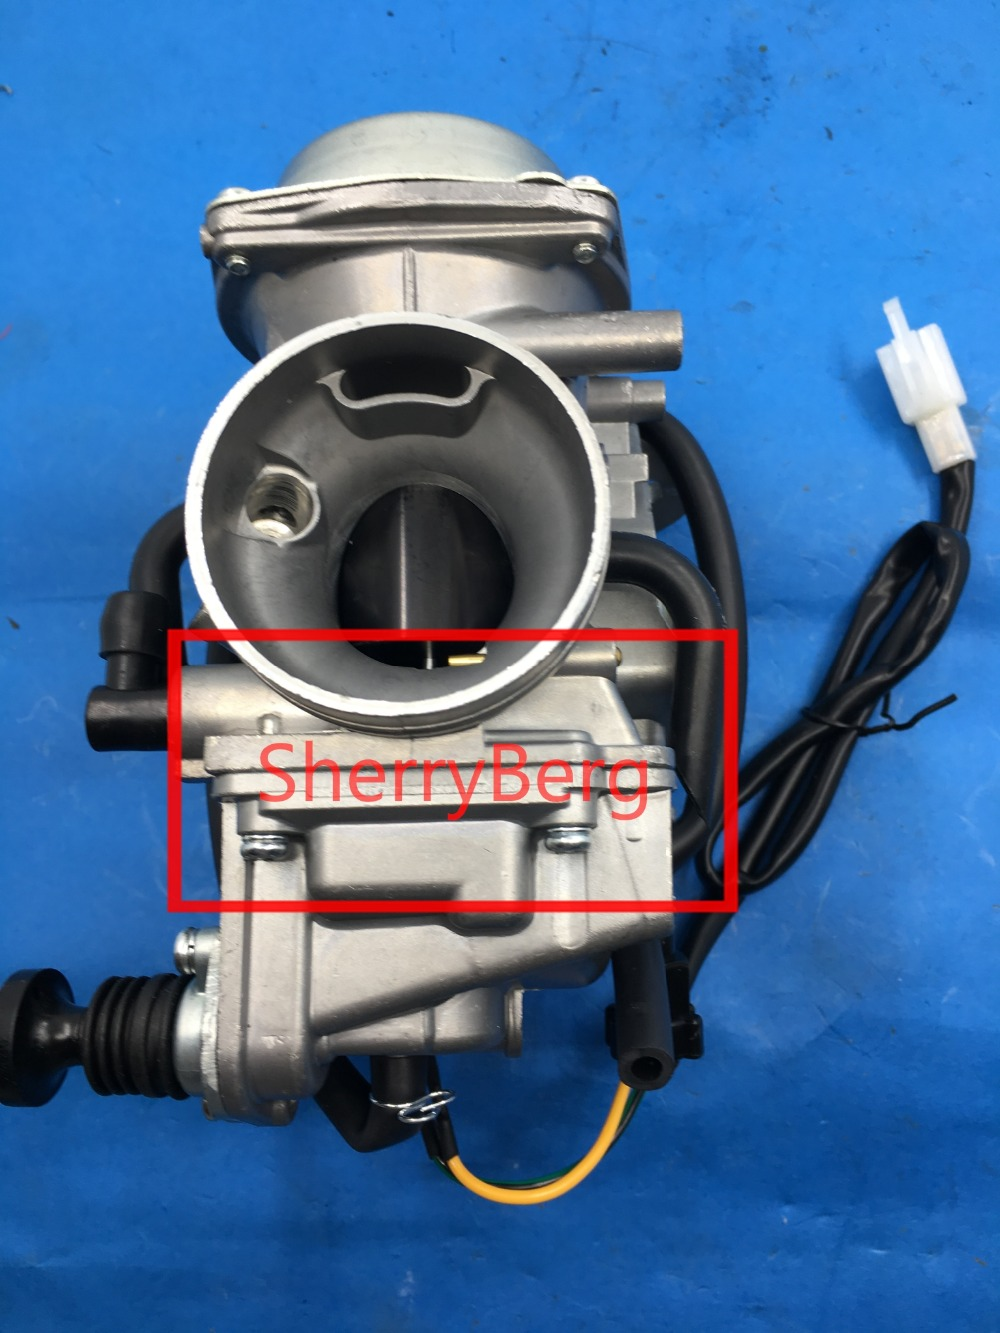 ФОТО NEW Carb Carburetor for Honda 400 TRX400 FW FOURTRAX FOREMAN 1995-2003 2000-2002  carburetor with electrical heater